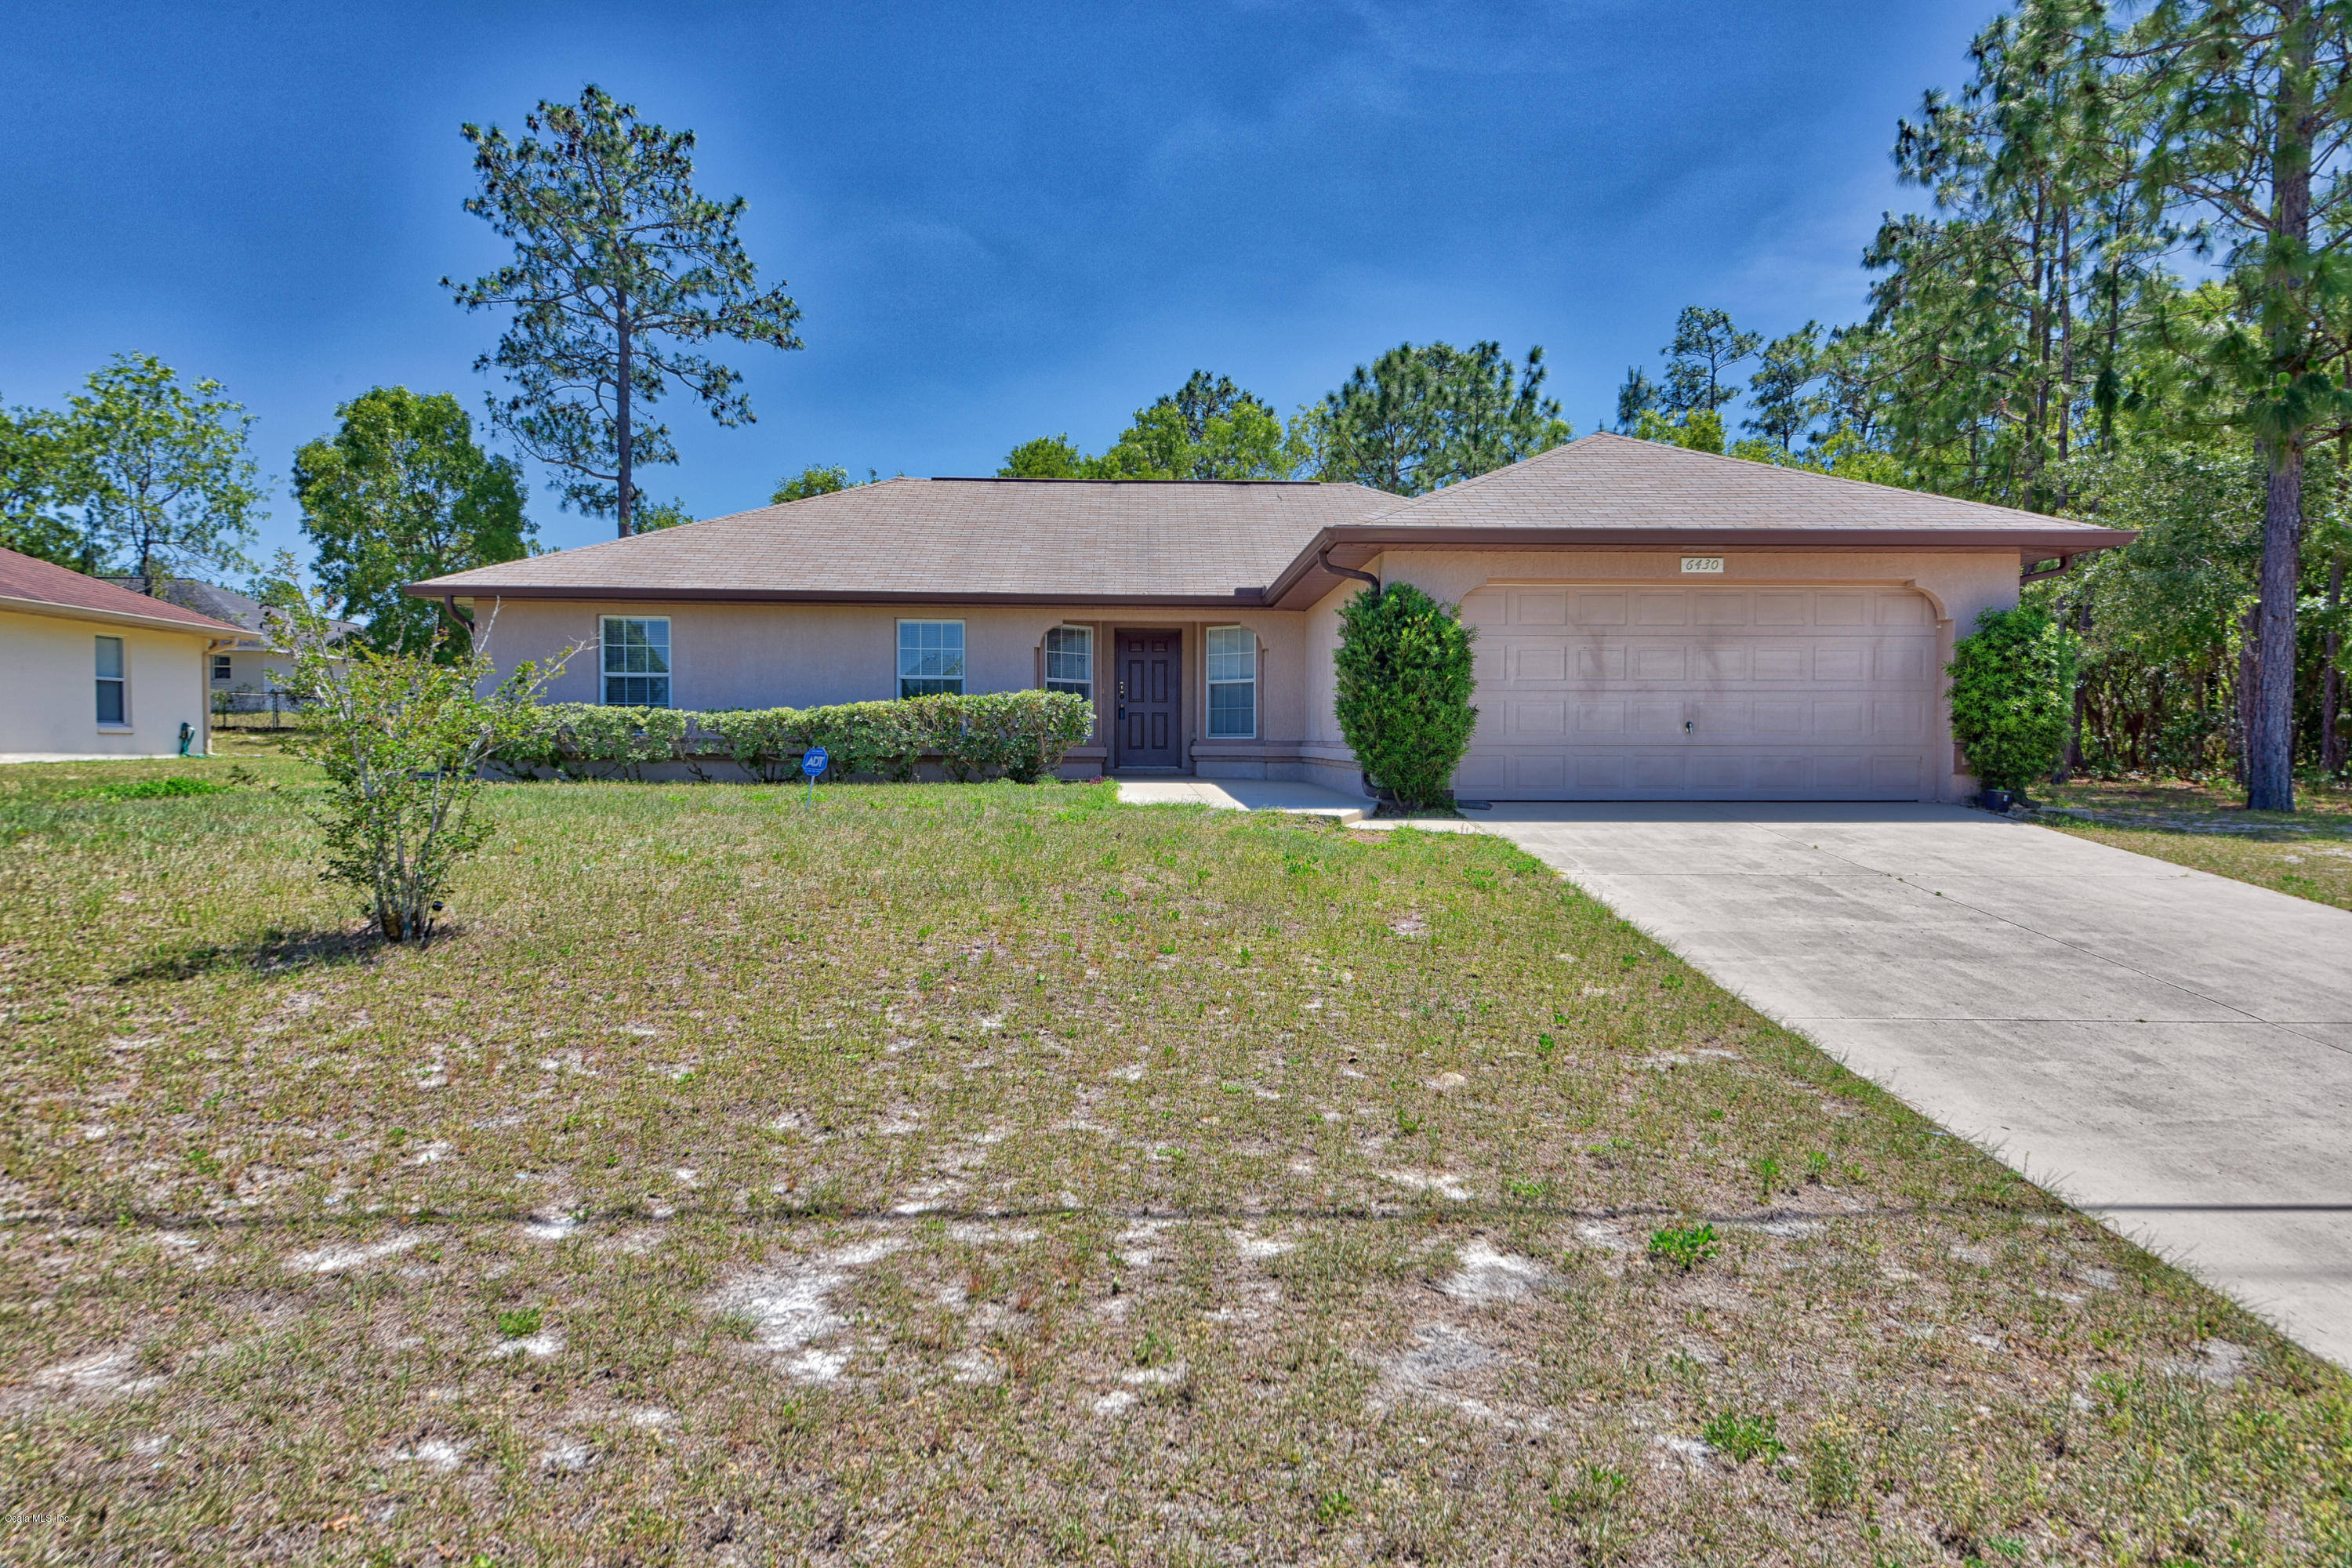 6430 SW 129TH LOOP, OCALA, FL 34473